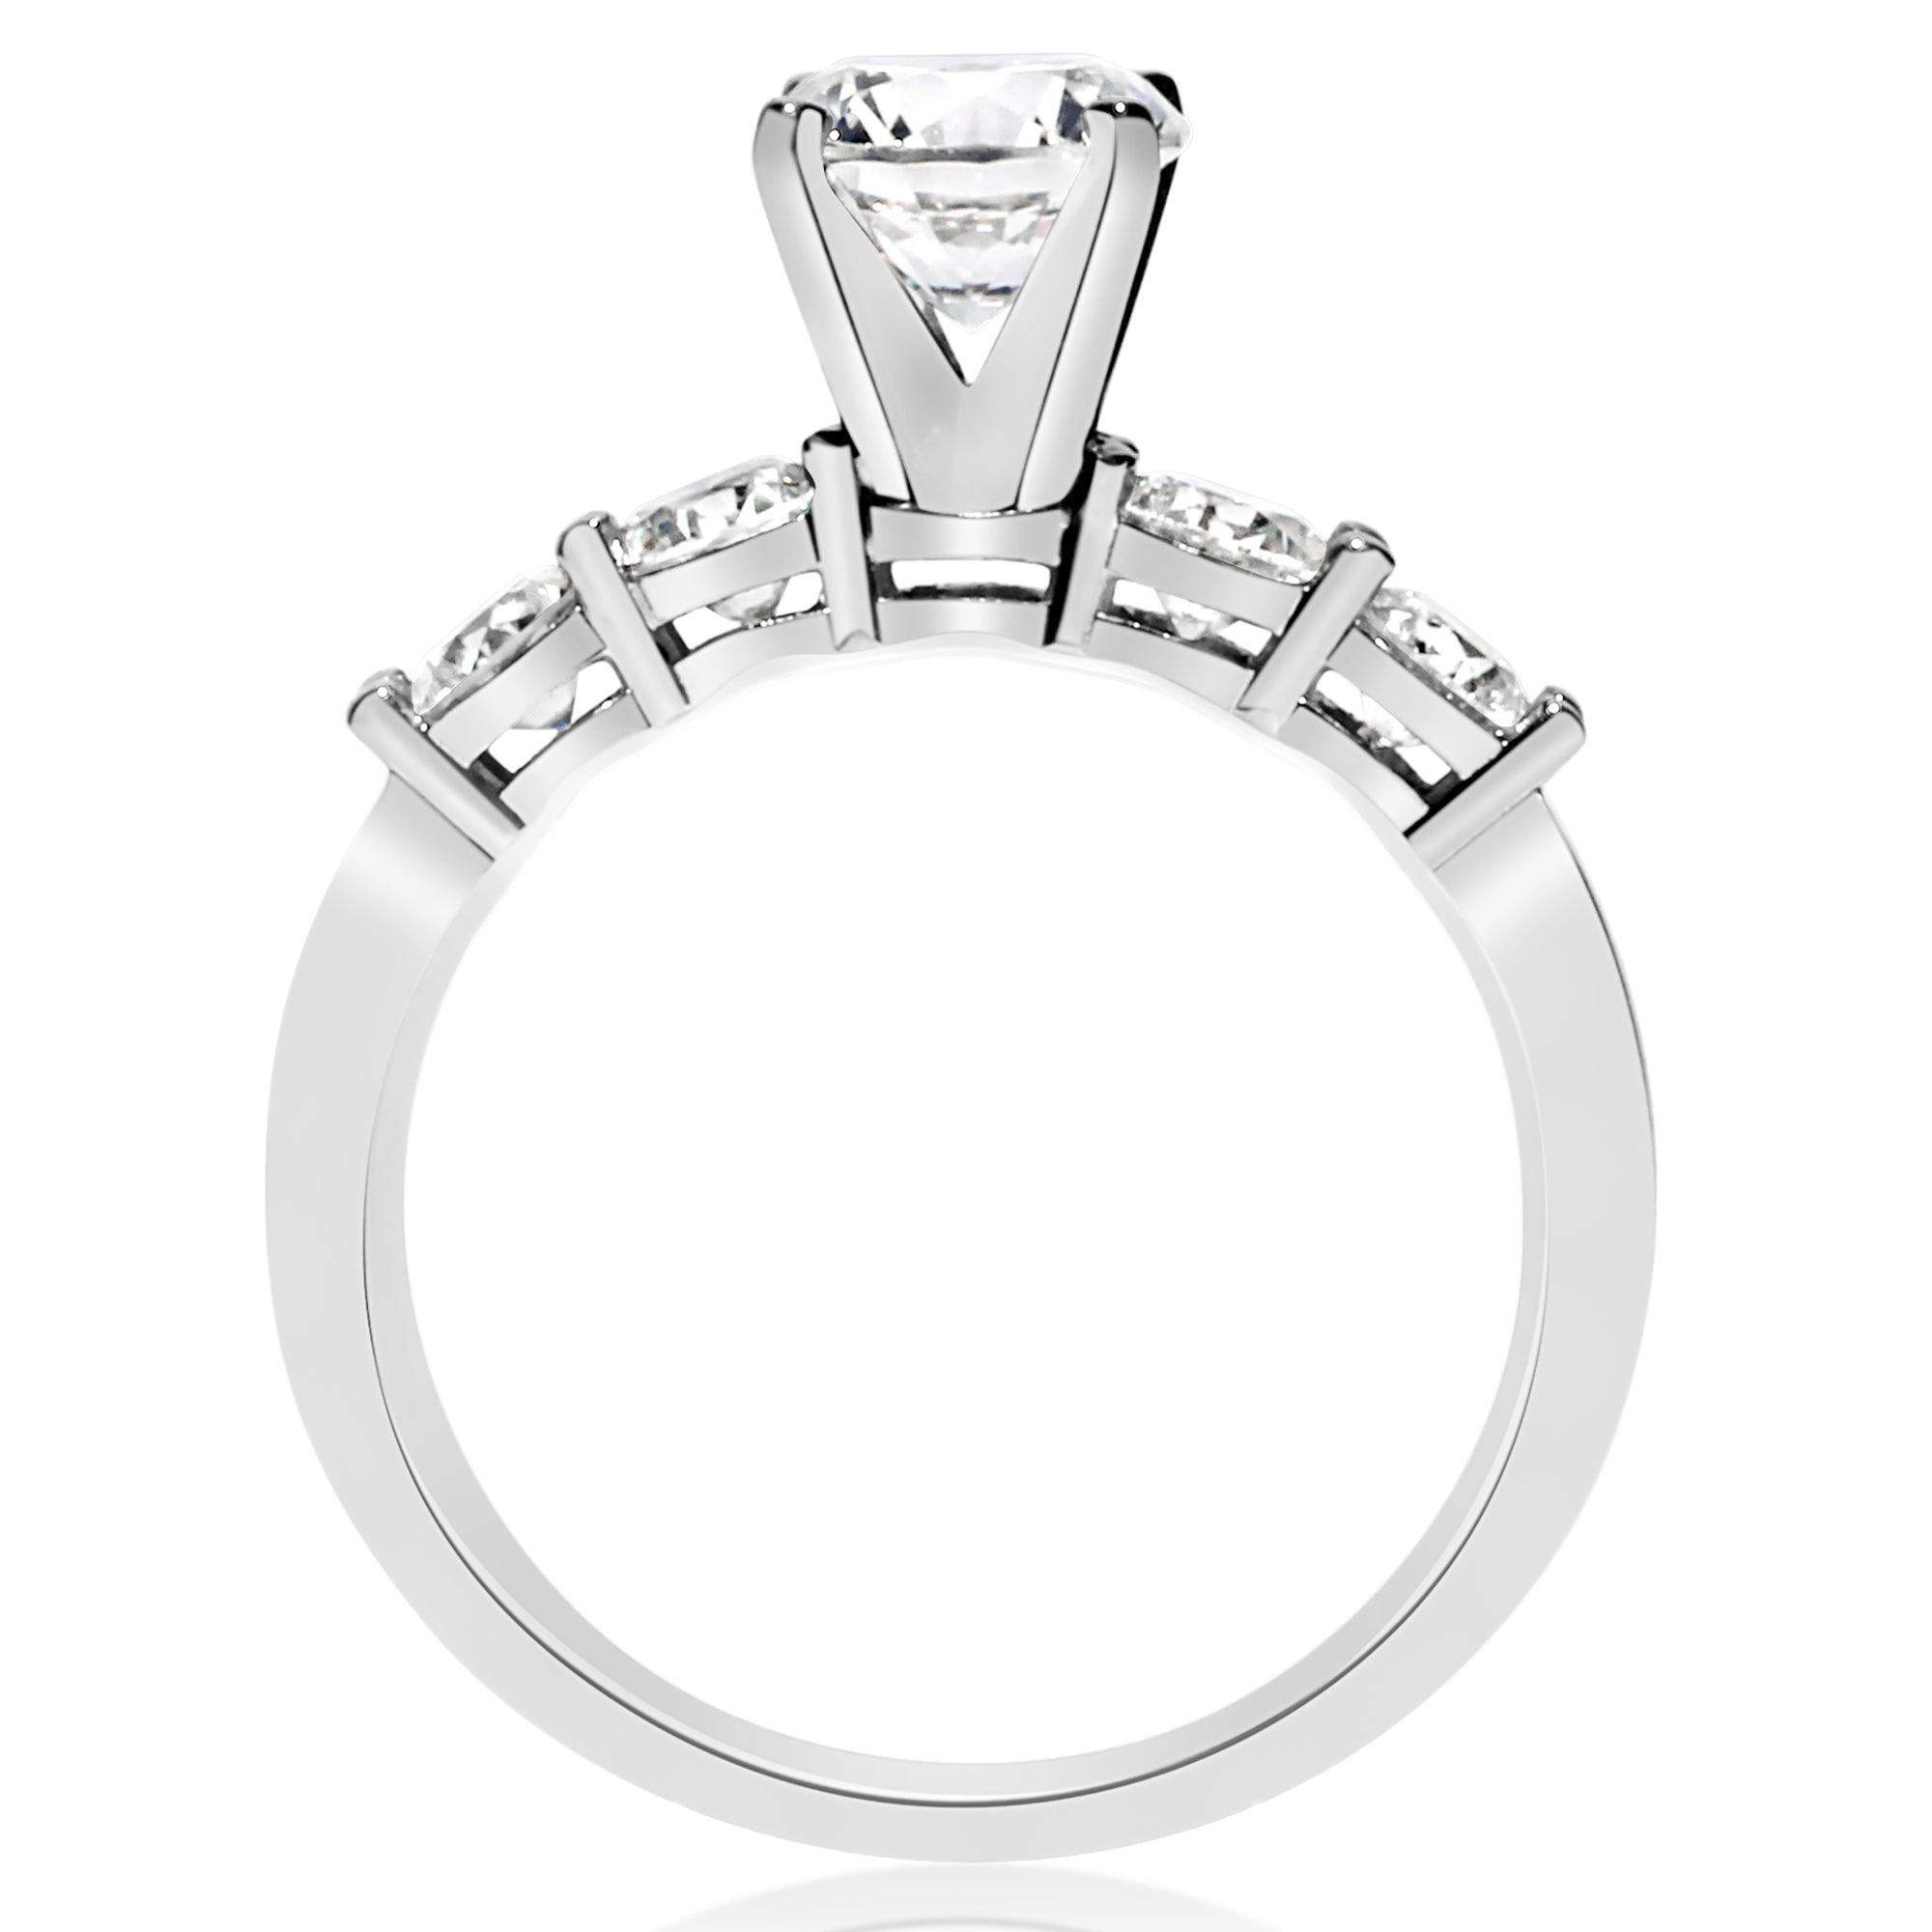 carat diamond ring cubic engagement products rings princess zirconia cut wedding prong faux sparkles solitaire barrie cz home classic set beloved